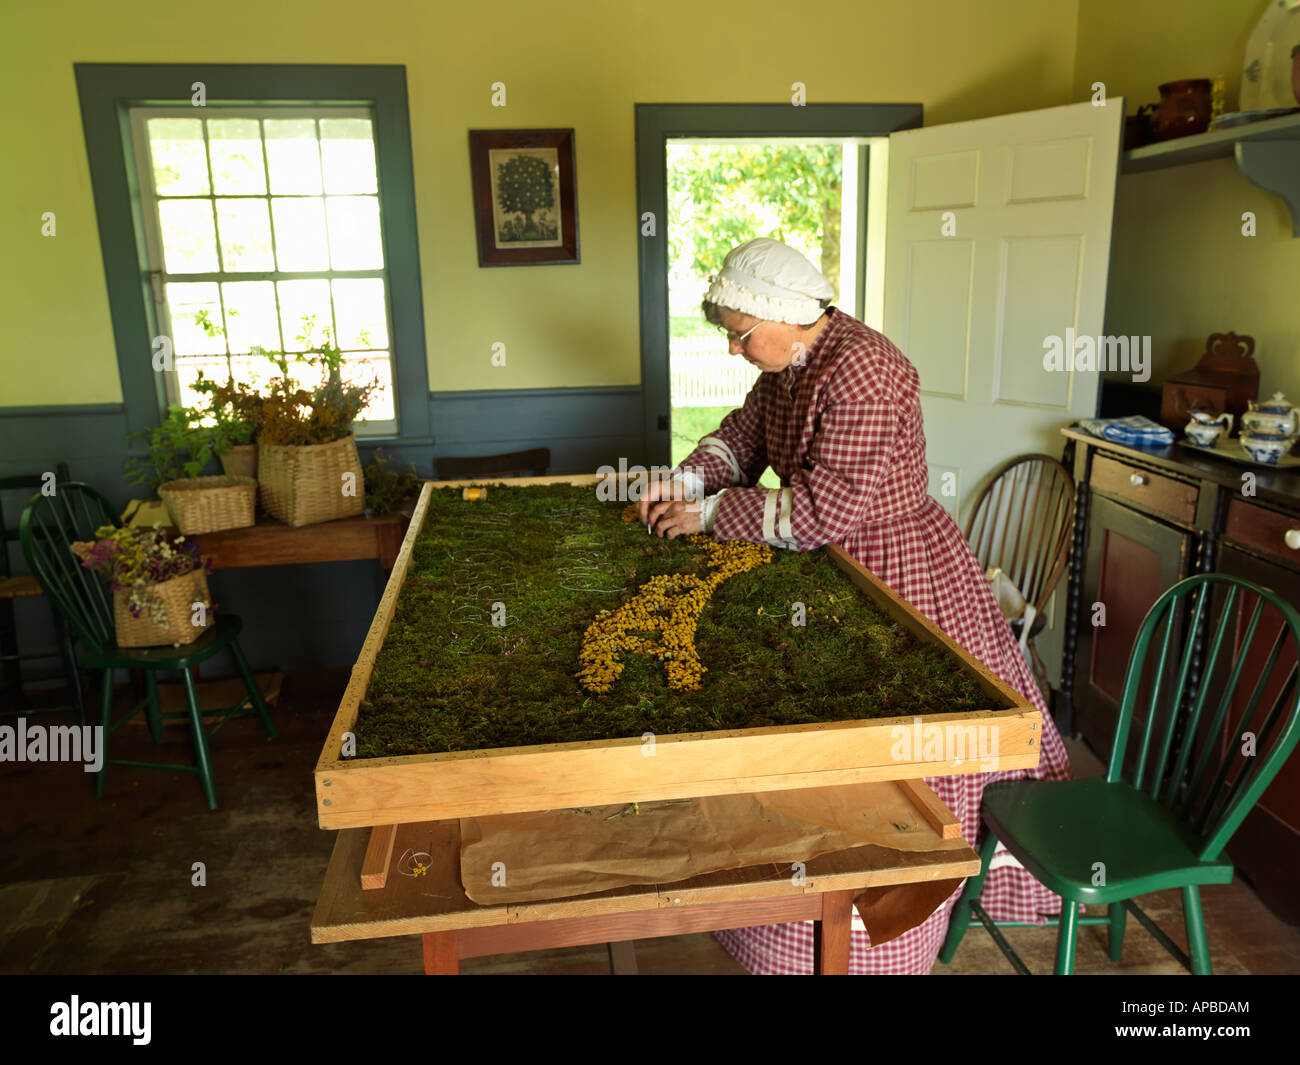 Canada Ontario Morrisburg Upper Canada Village woman creating a tapestry from moss and dried flowers - Stock Image